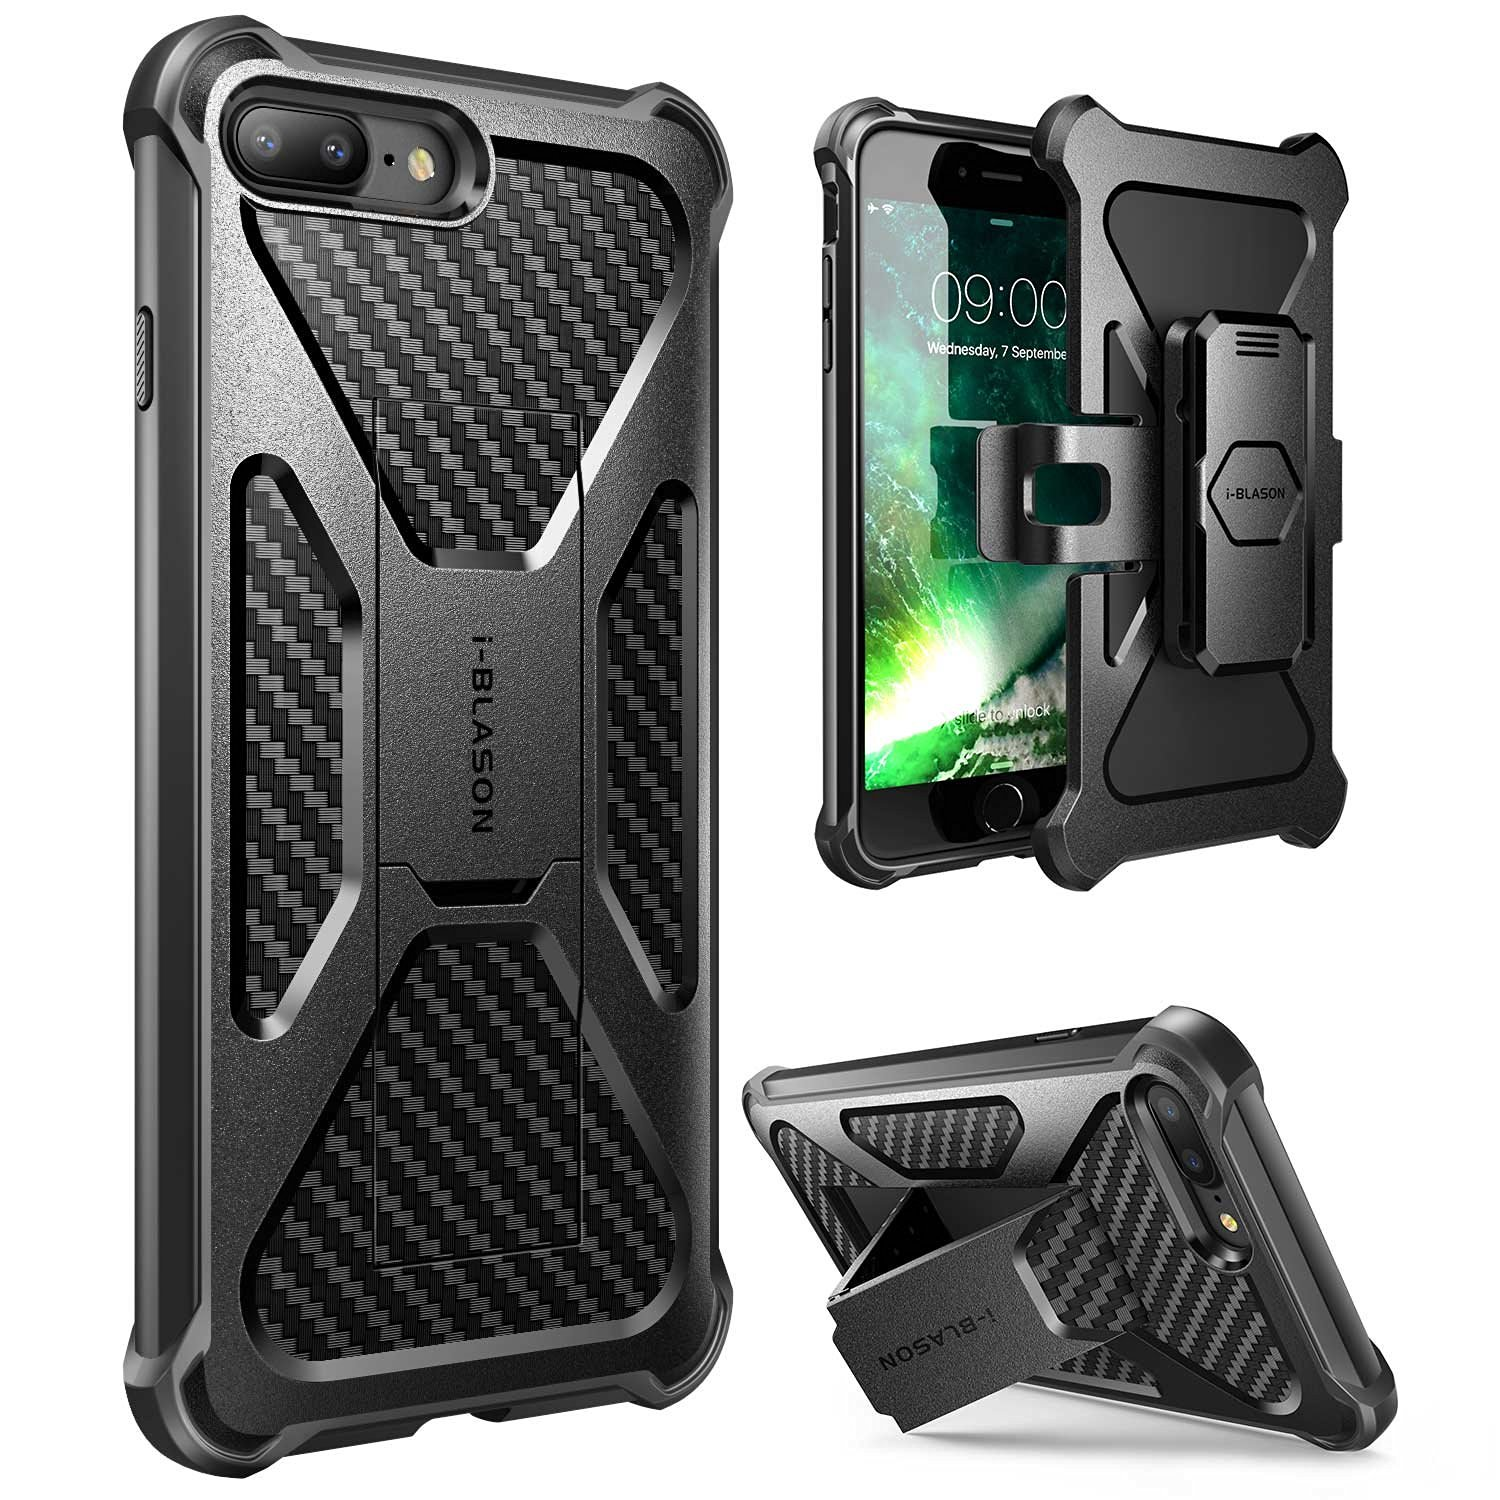 iphone 7 plus cases, best iphone 7 plus cases, cheap phone cases, cheap iphone cases, cheap iphone 7 plus cases, iphone 7 plus, iphone 7, apple